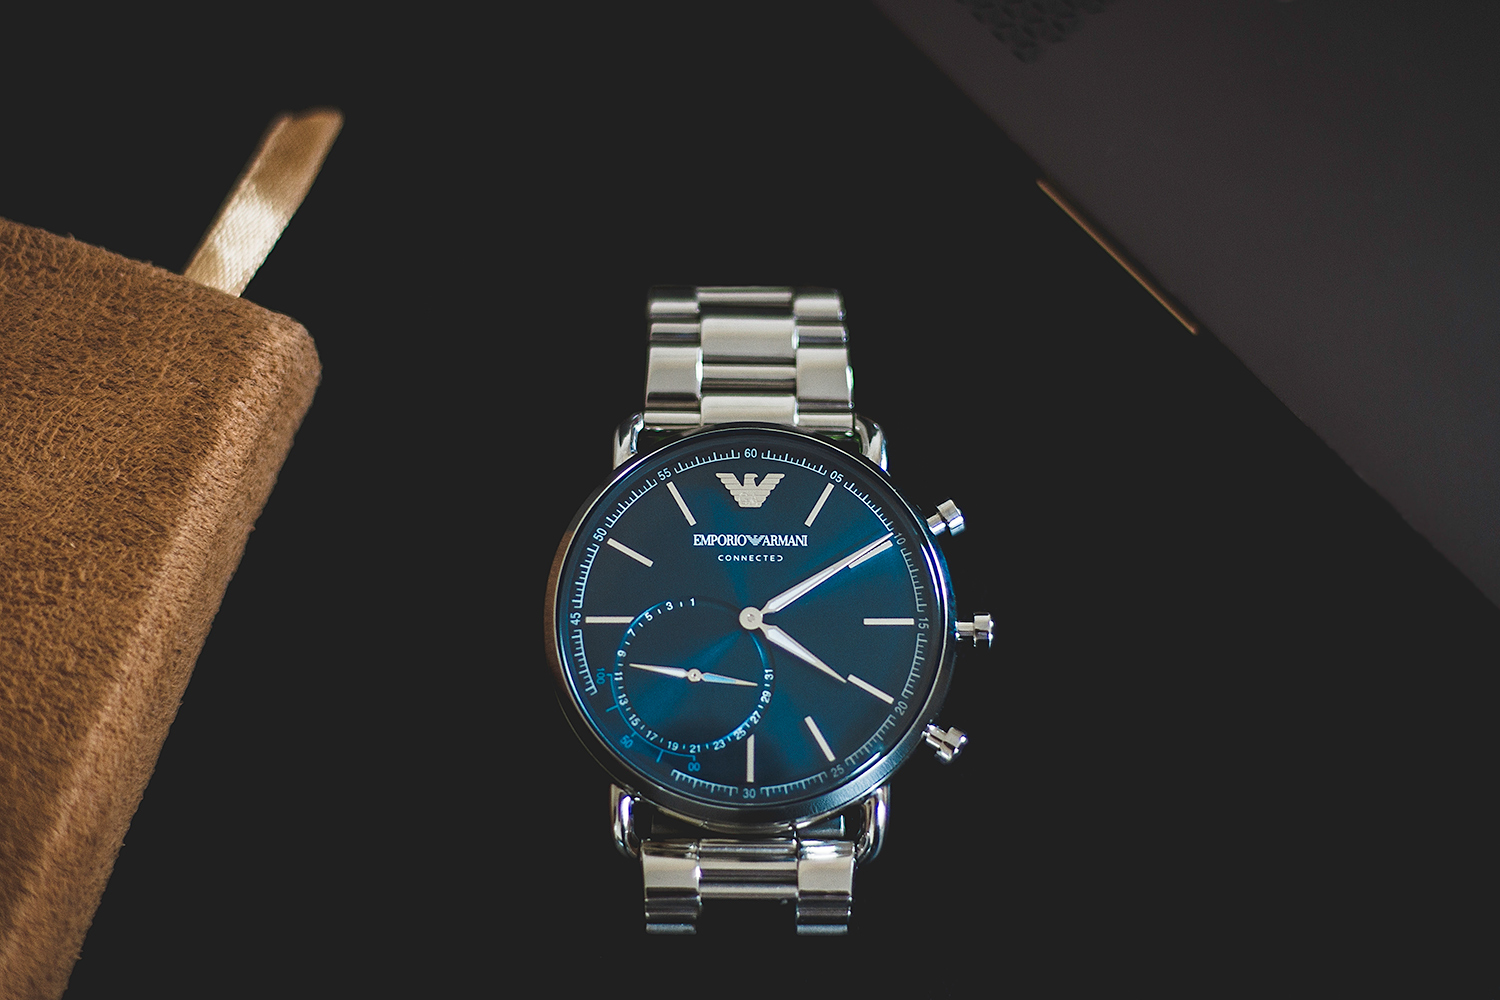 armani watch product commercial photography